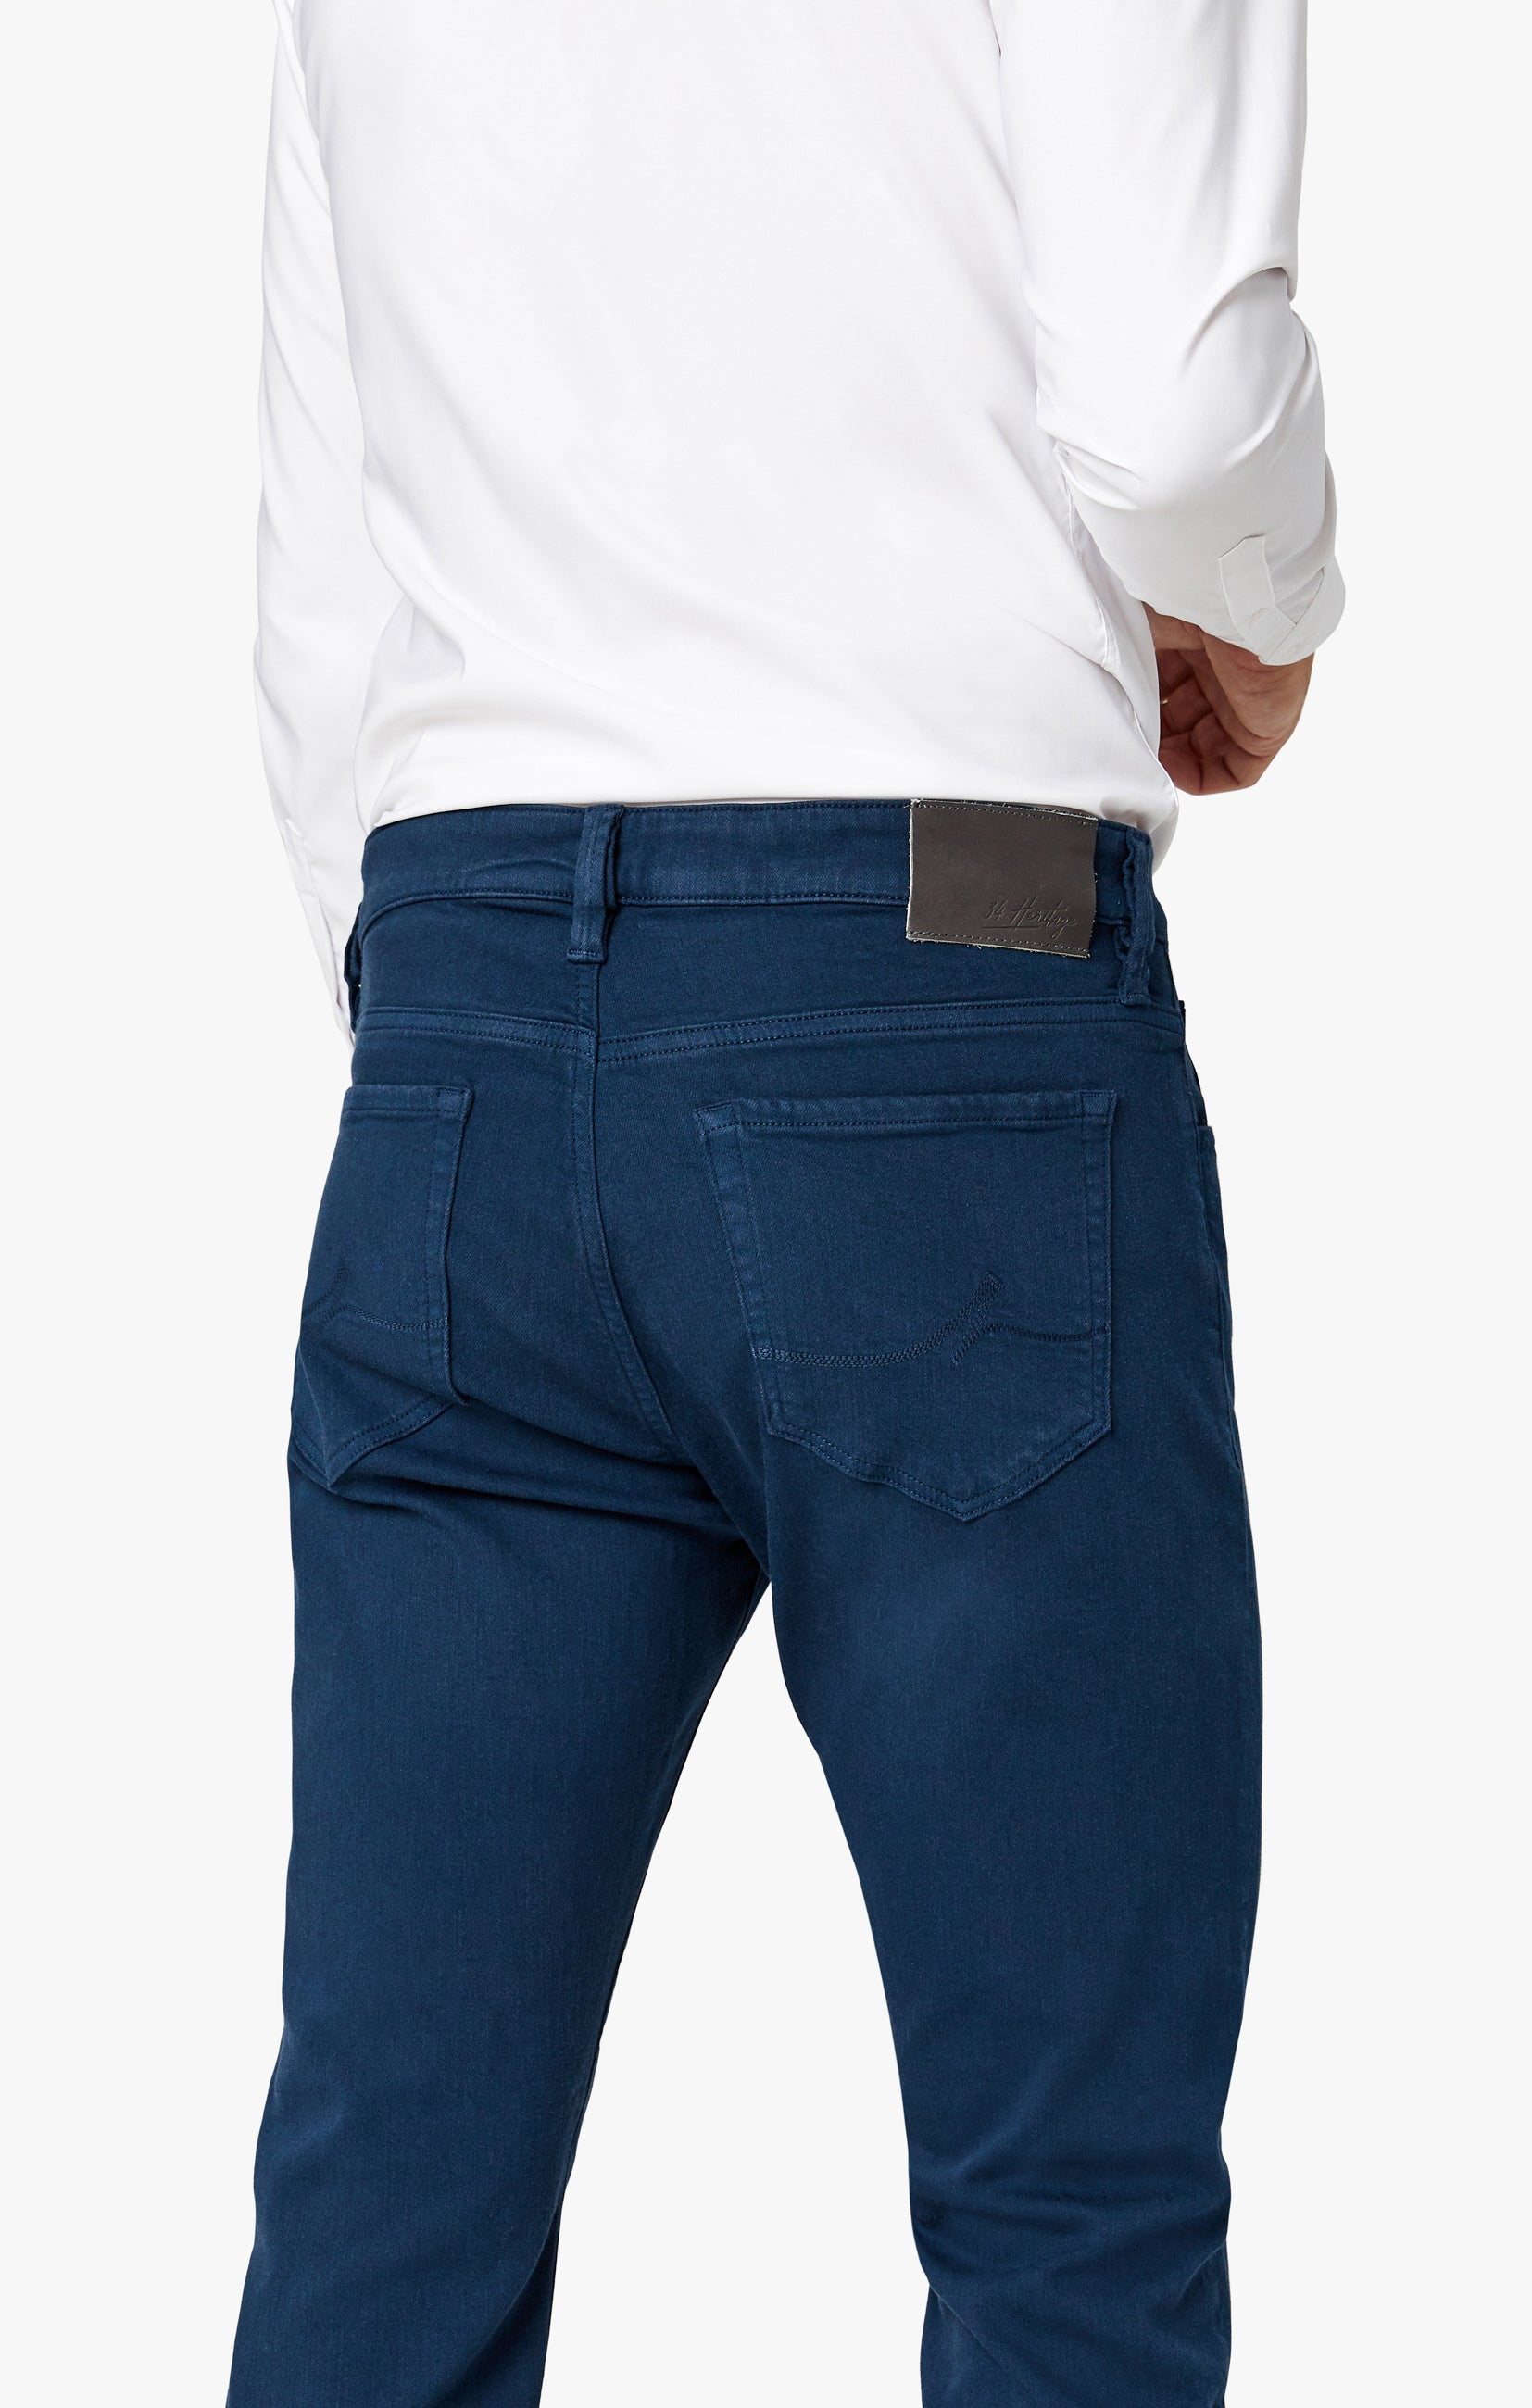 Charisma Relaxed Straight Pants in Petrol Comfort Image 2